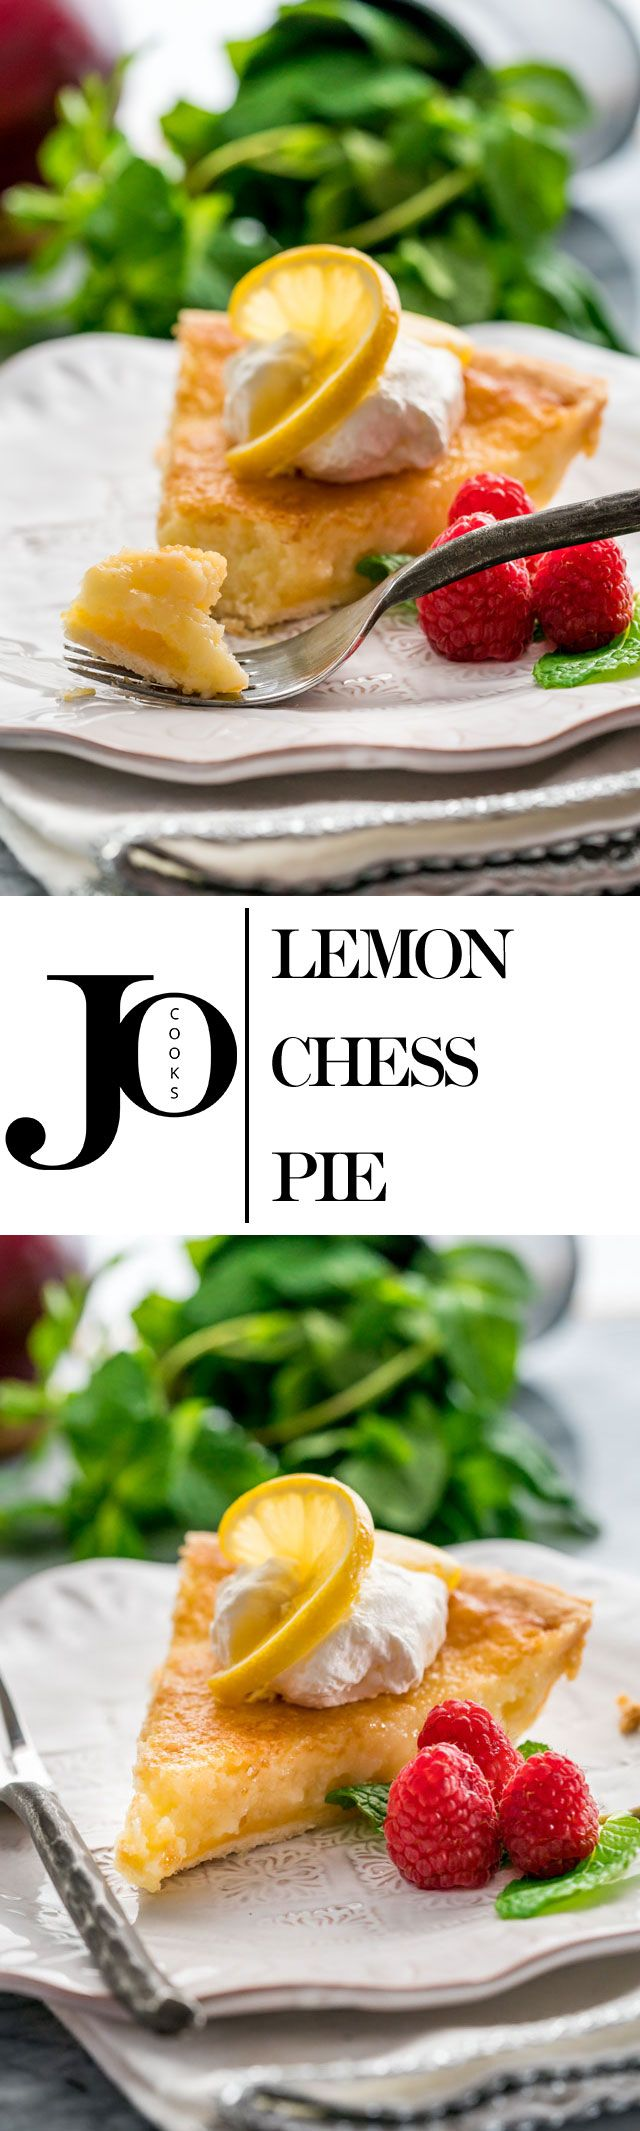 This Lemon Chess Pie is really easy to make and quick to put together. All the lemons simply make this pie divine, with its flaky crust and its incredible lemon curd like filling.